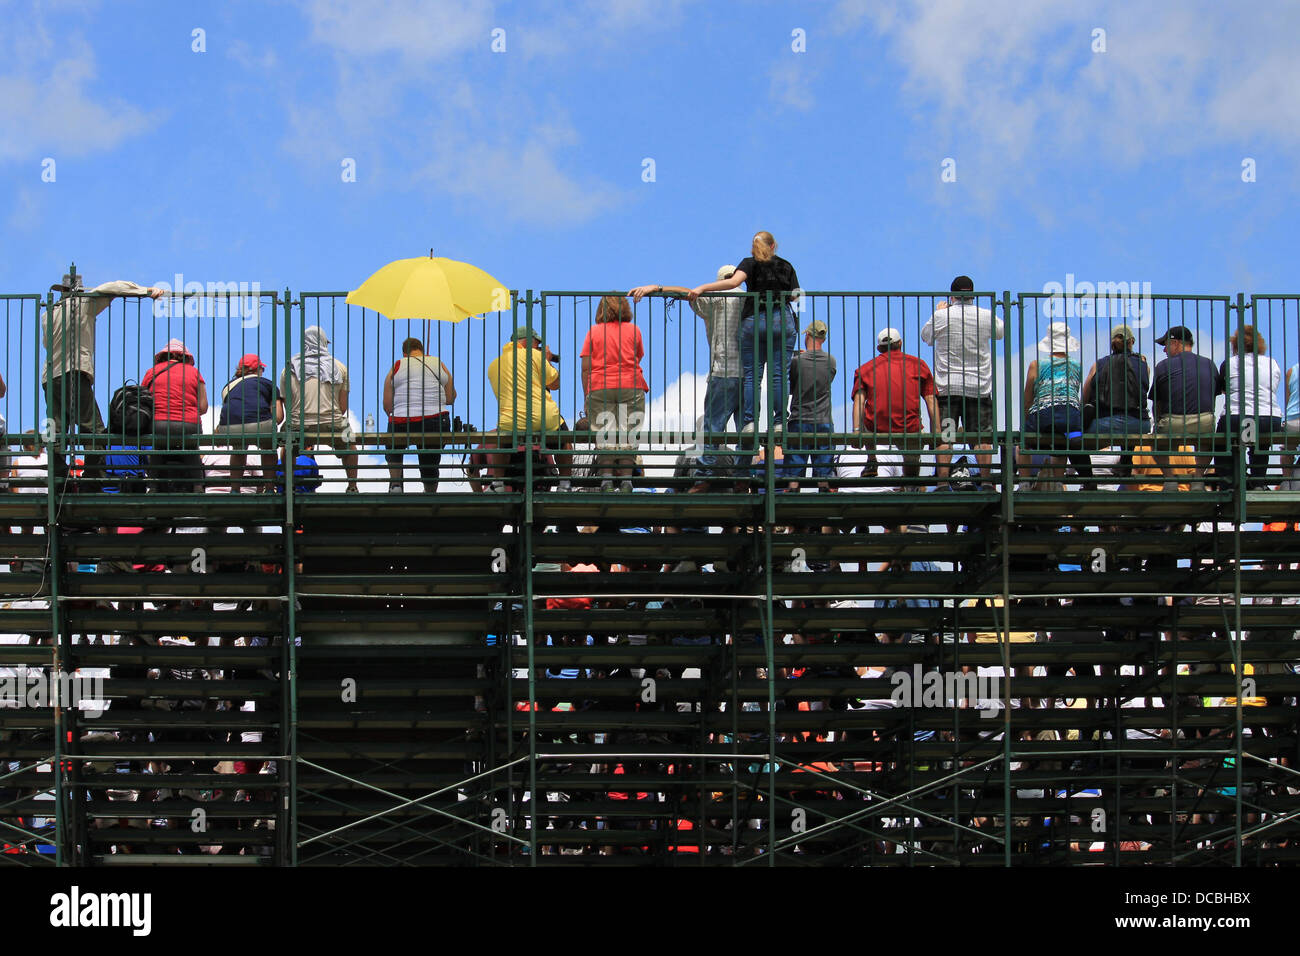 People watching an event on bleachers - Stock Image